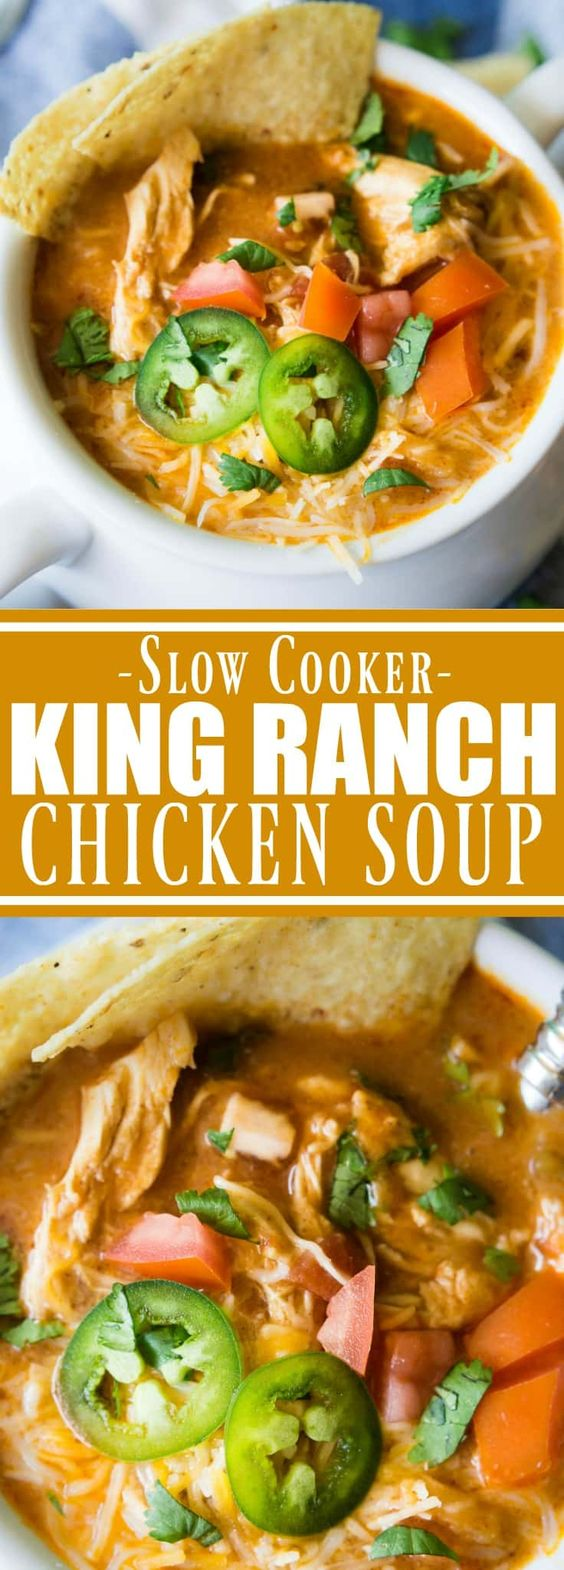 Slow Cooker King Ranch Chicken Soup Recipe